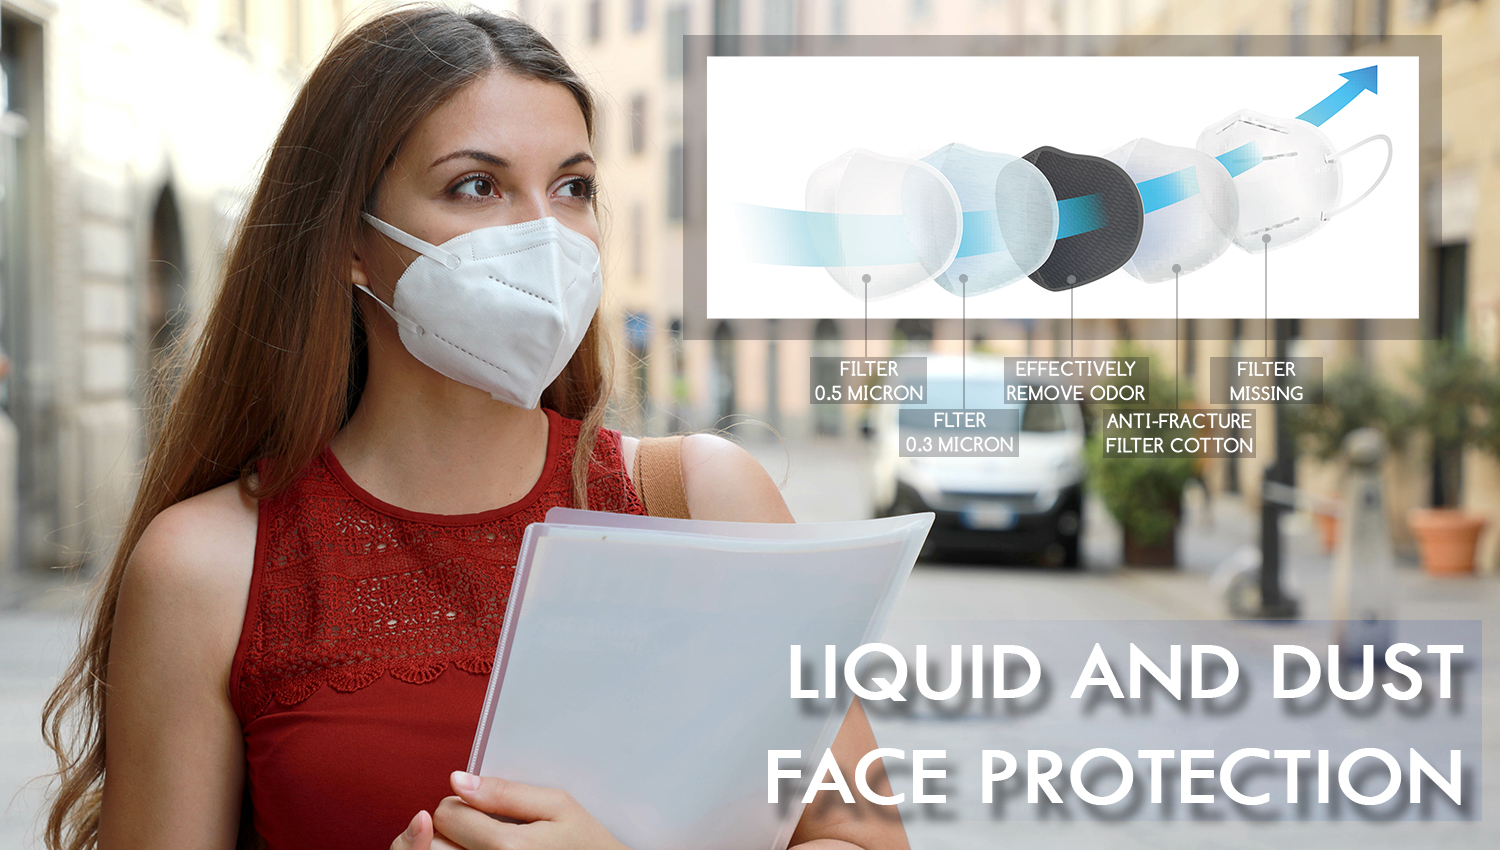 Liquid and Dust Protection